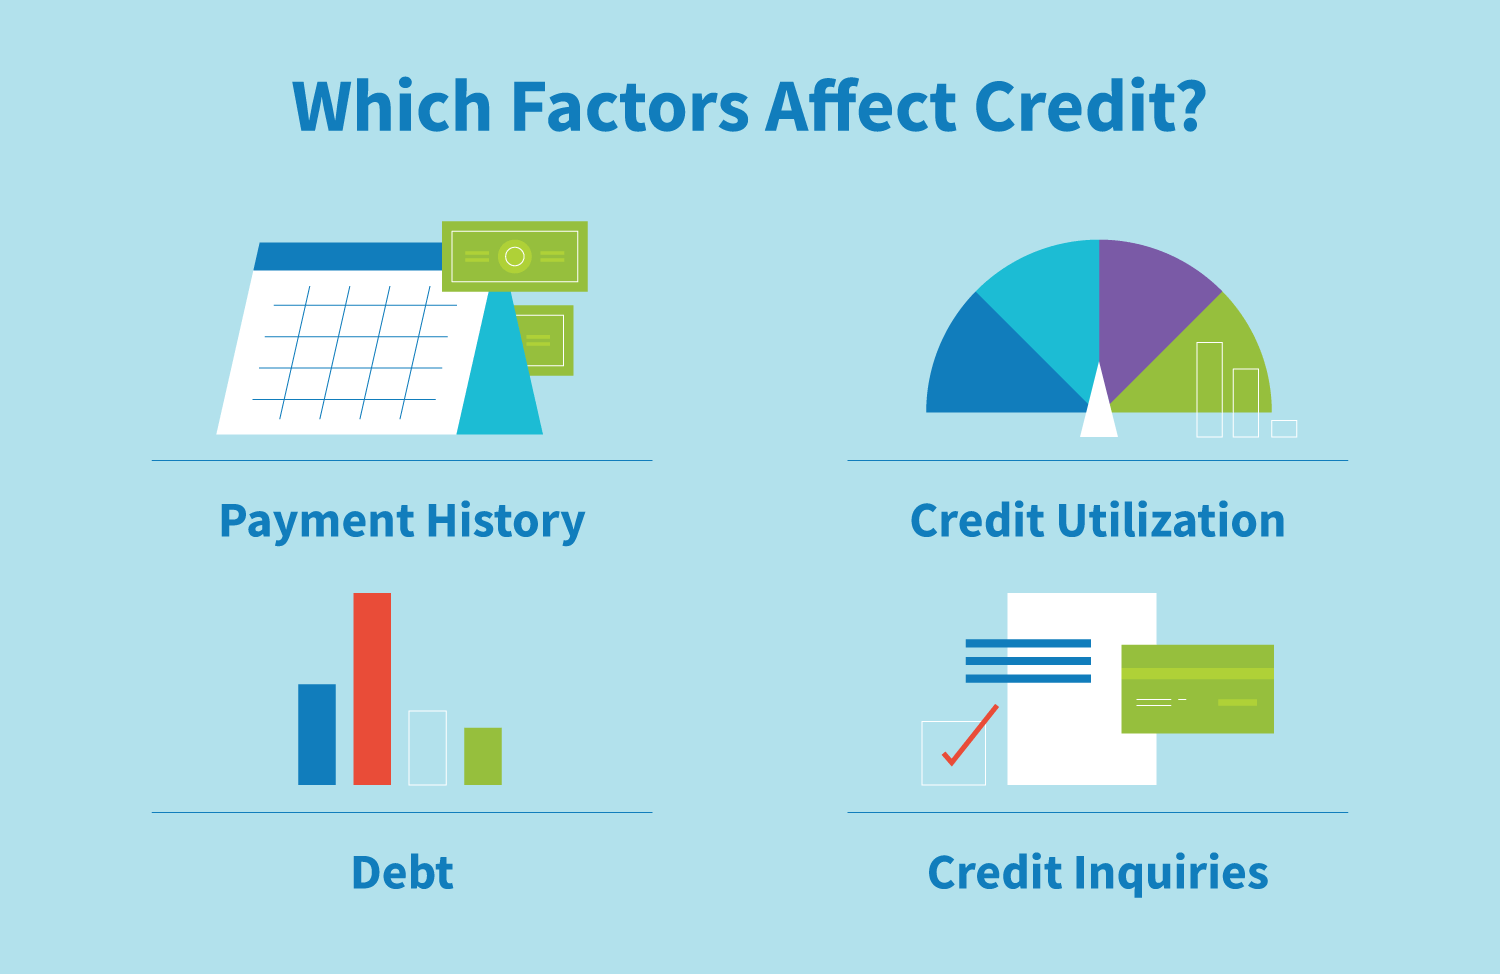 Which factors affect credit?